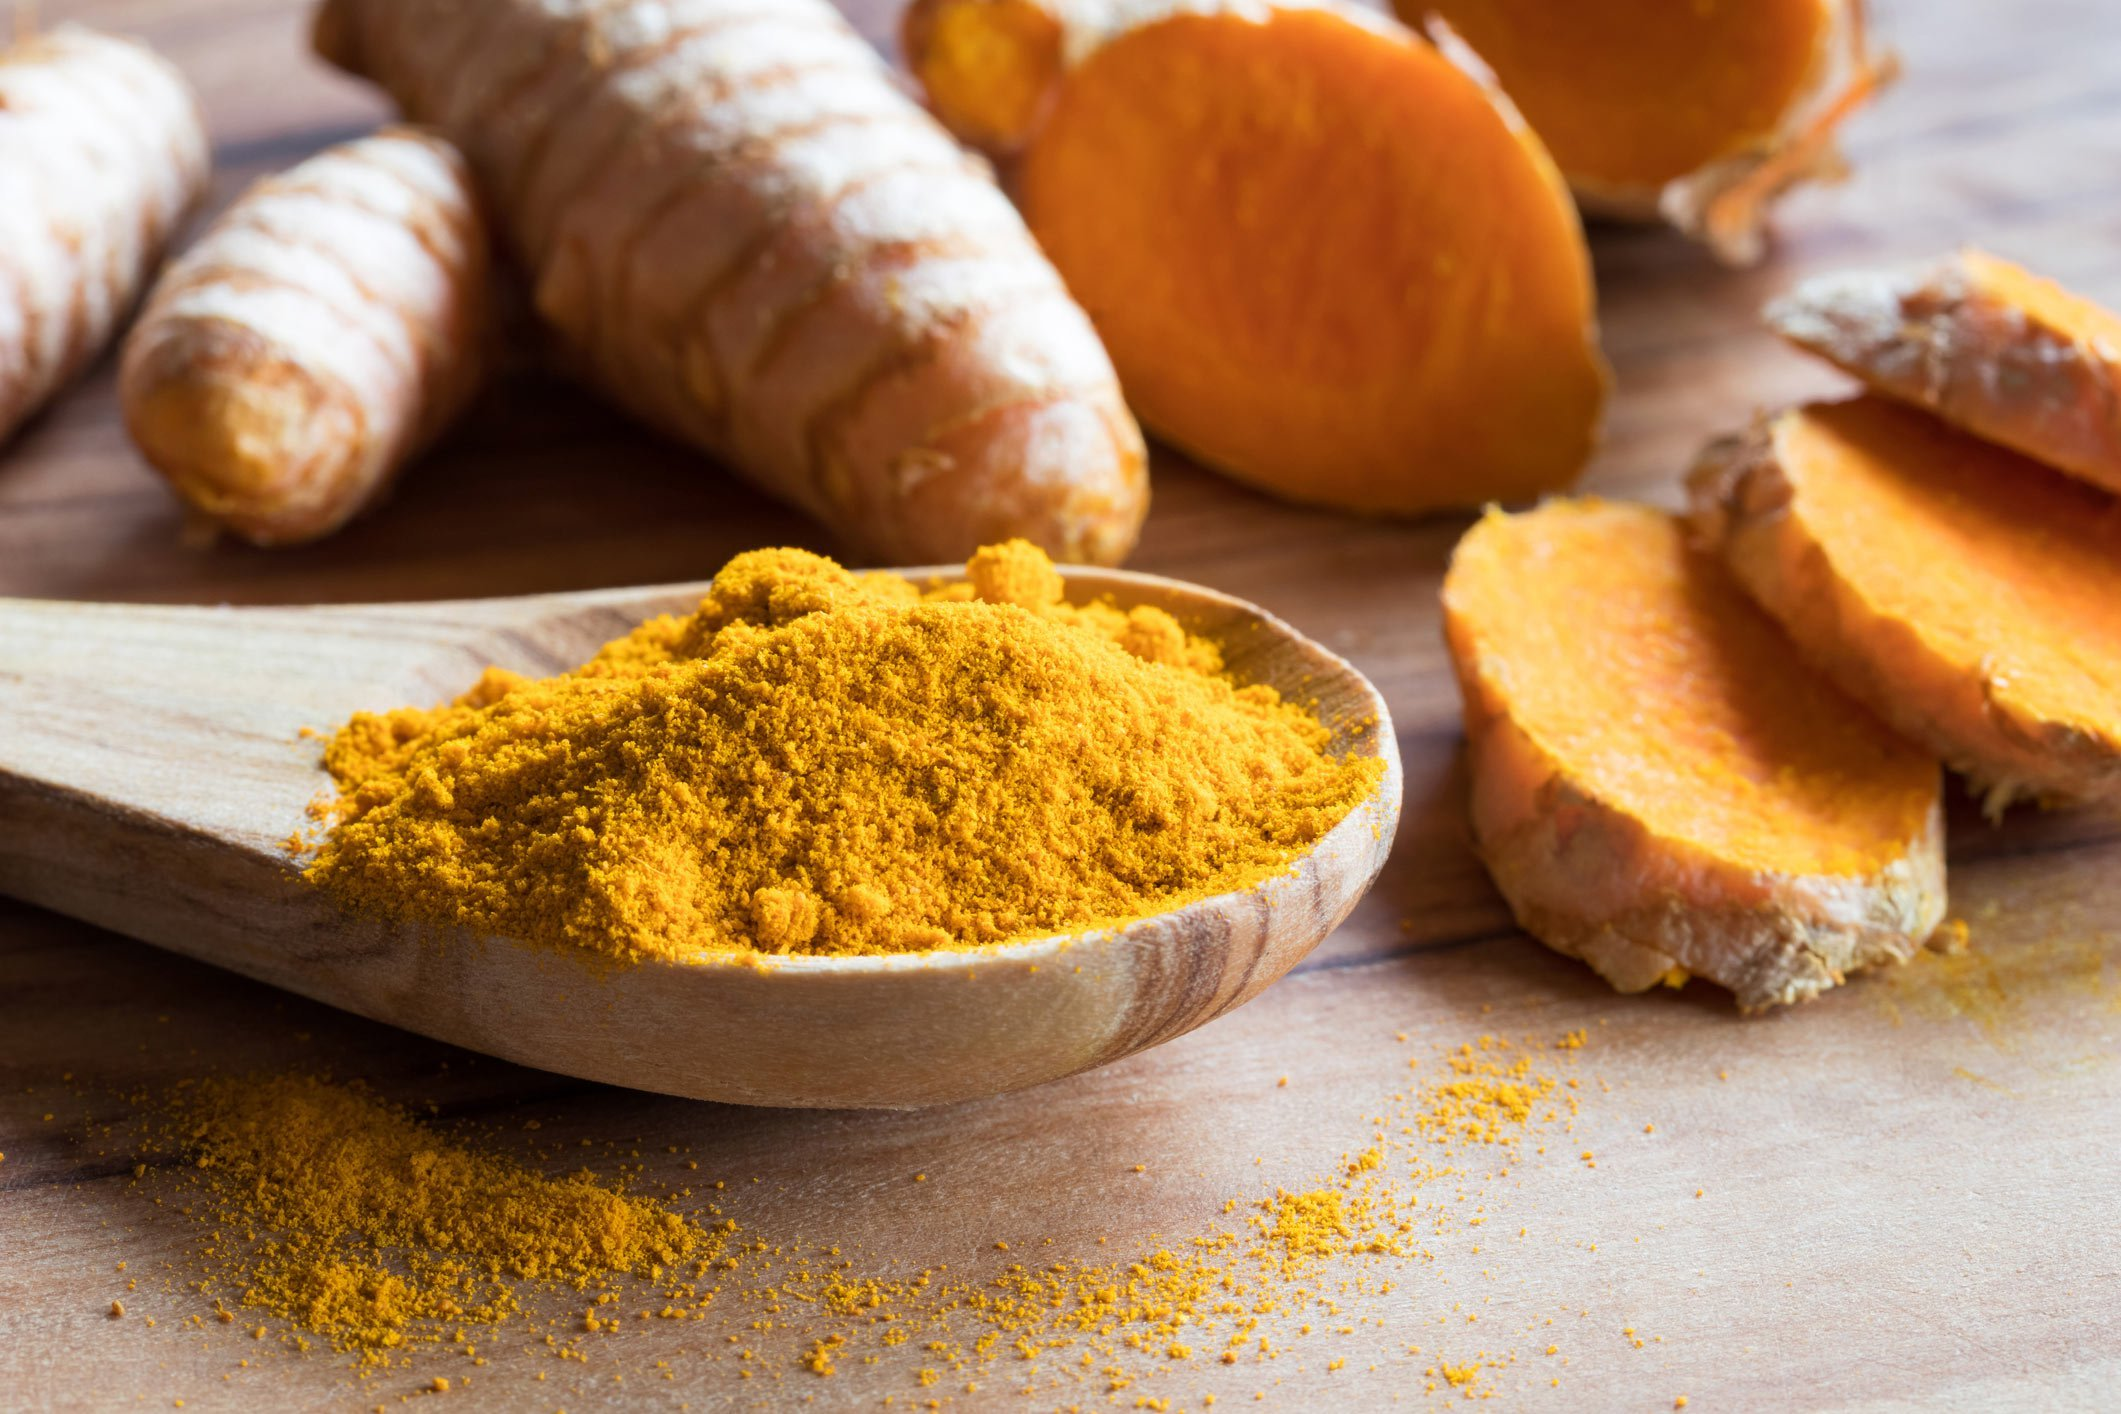 Top detoxifying foods: Turmeric